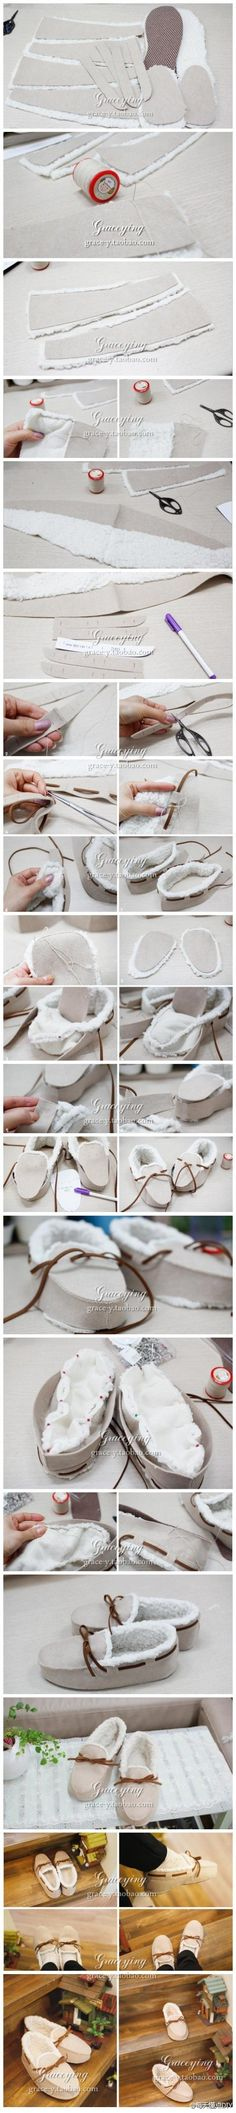 DIY :: Slippers